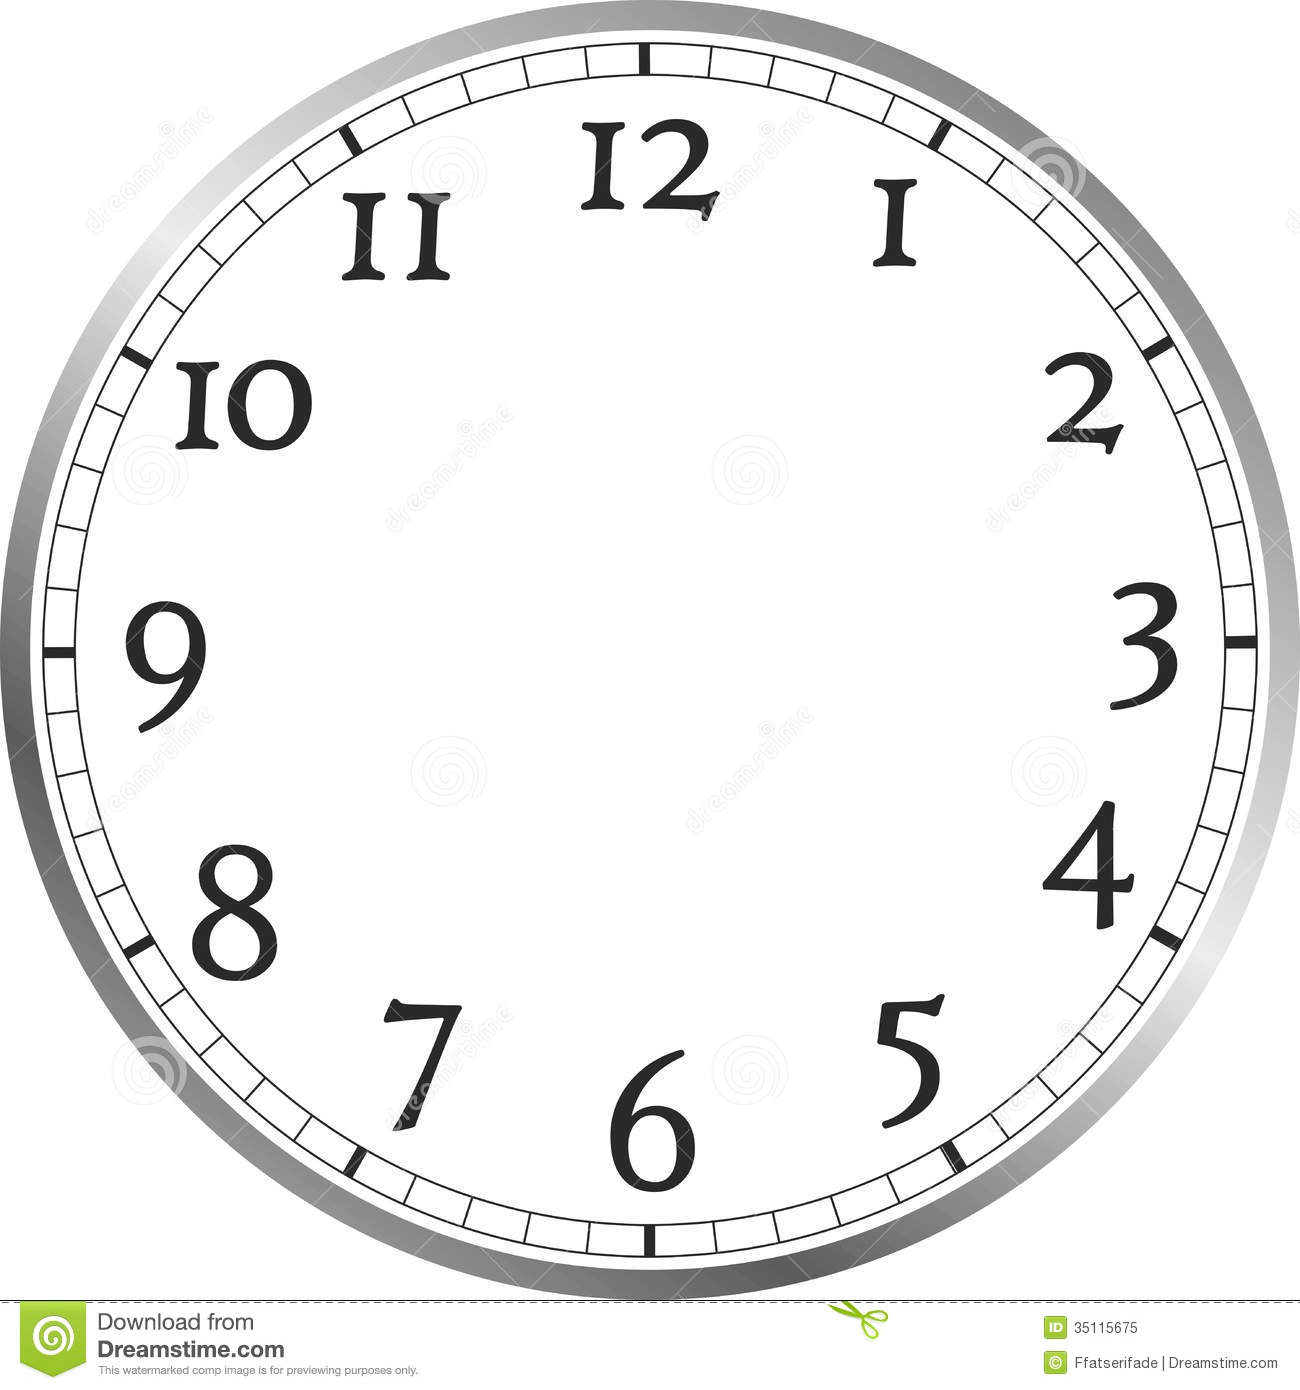 Watch Face Royalty Free Stock Photo Image 35115675